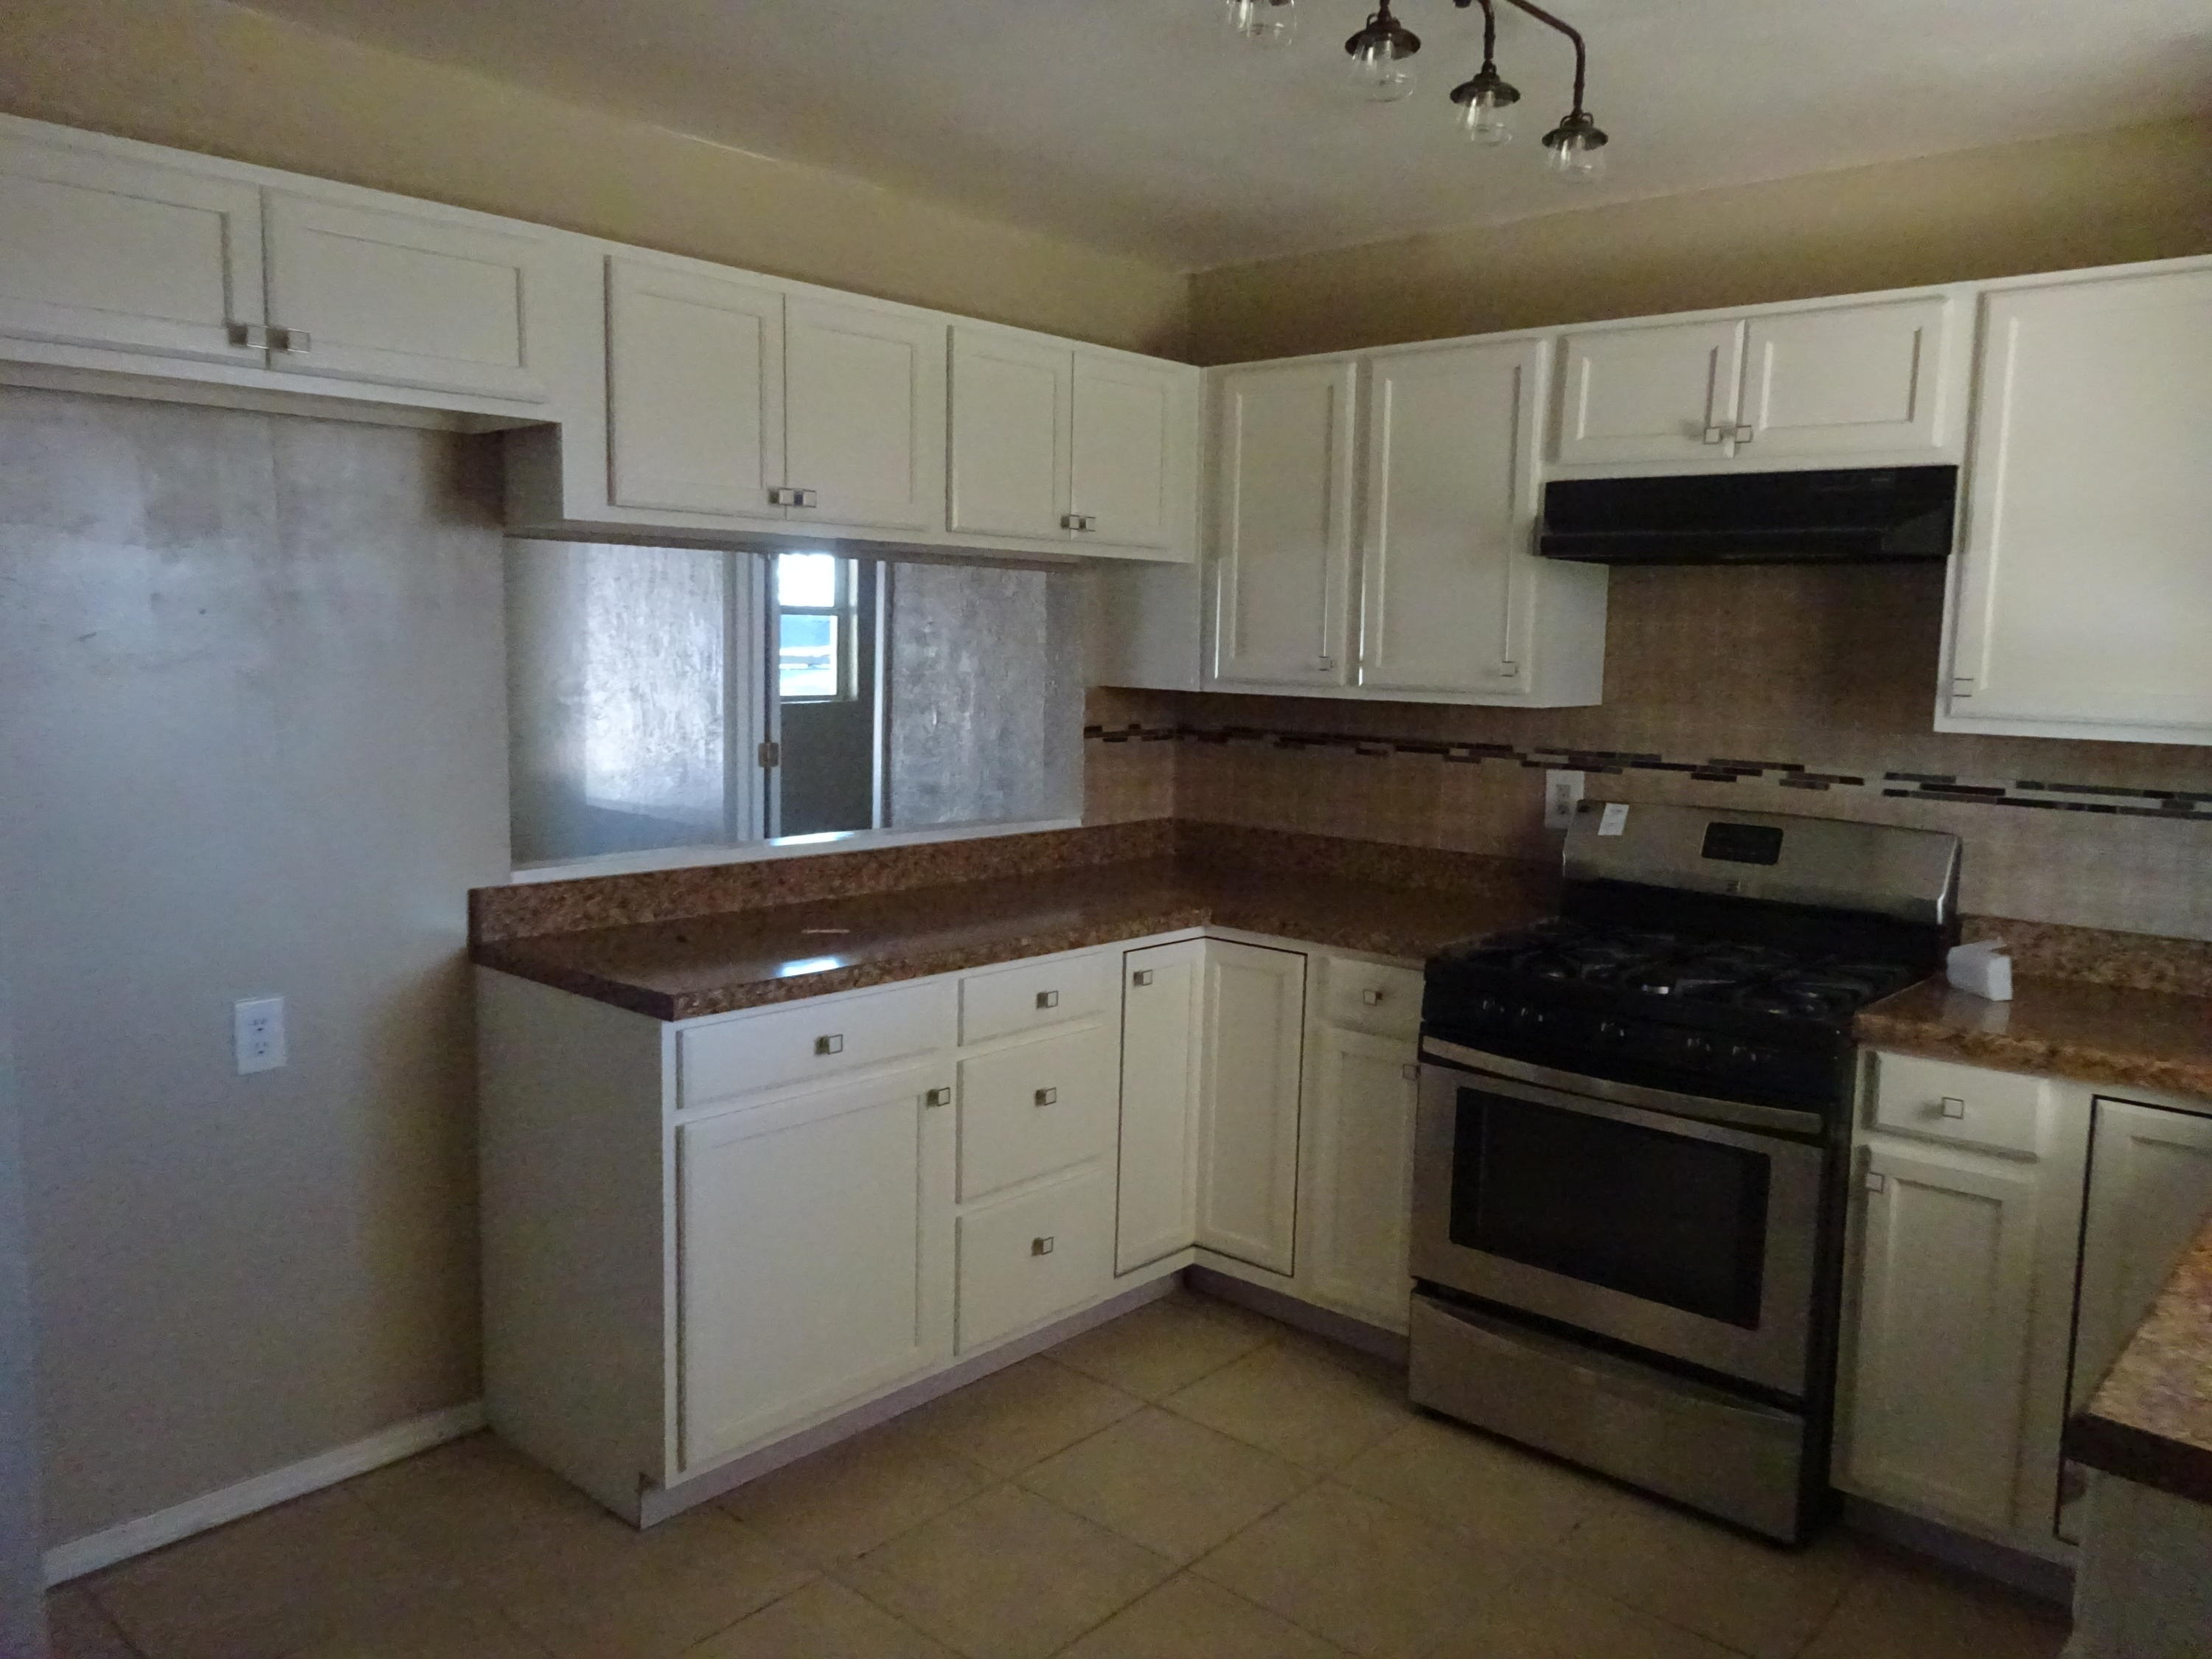 10356 NEWCASTLE, El Paso, Texas 79924, 3 Bedrooms Bedrooms, ,1 BathroomBathrooms,Residential,For sale,NEWCASTLE,804515